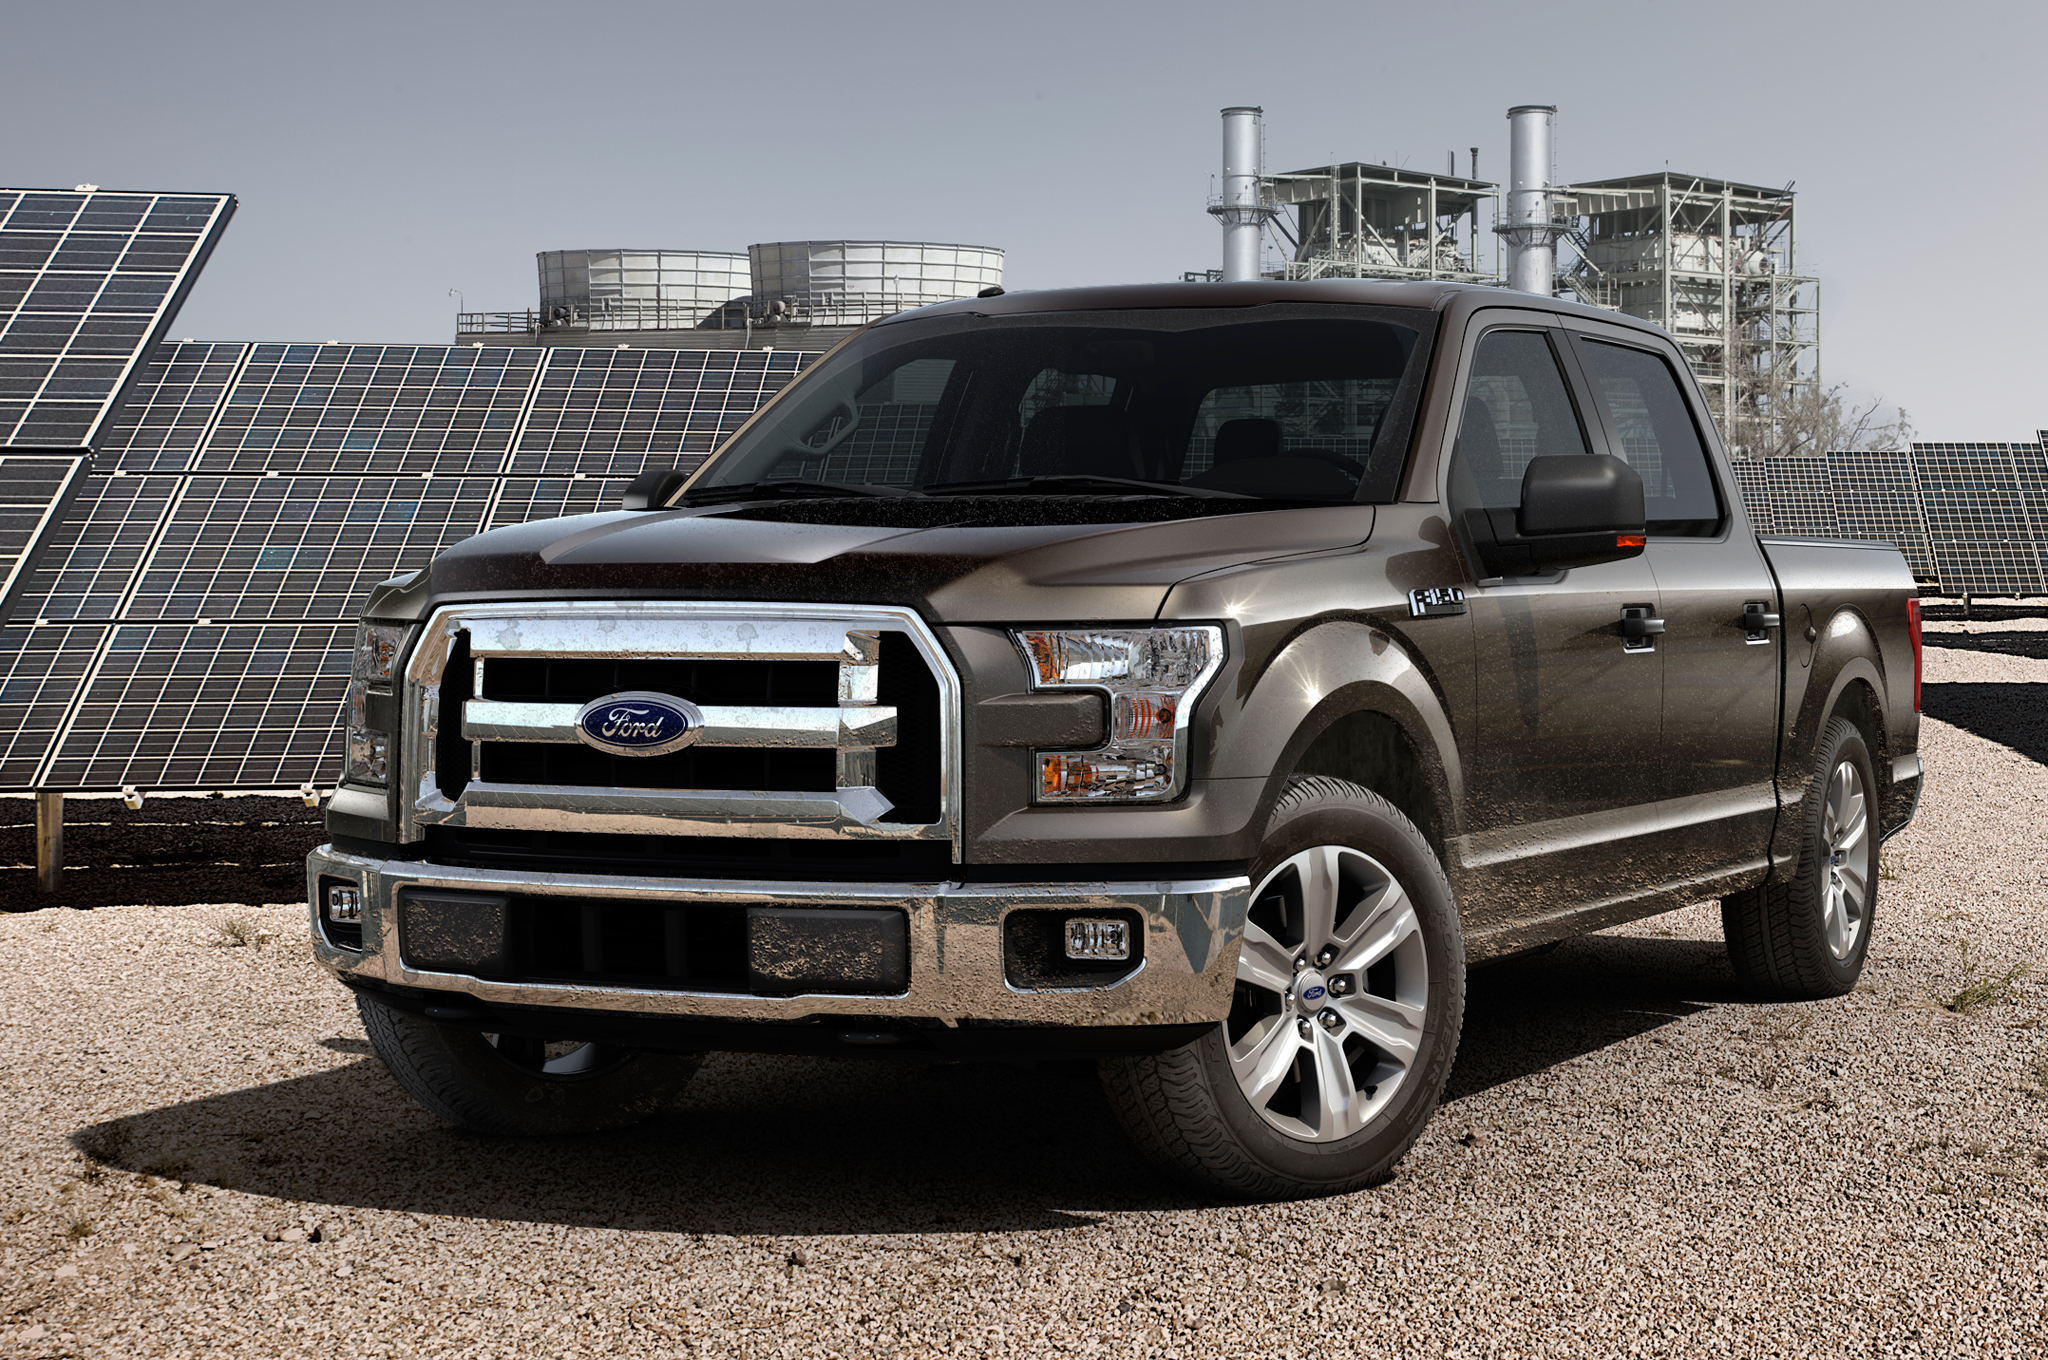 medium resolution of 2015 ford f 150 2 7l ecoboost rated 325 hp 375 lb ft tows max 8500 lbs